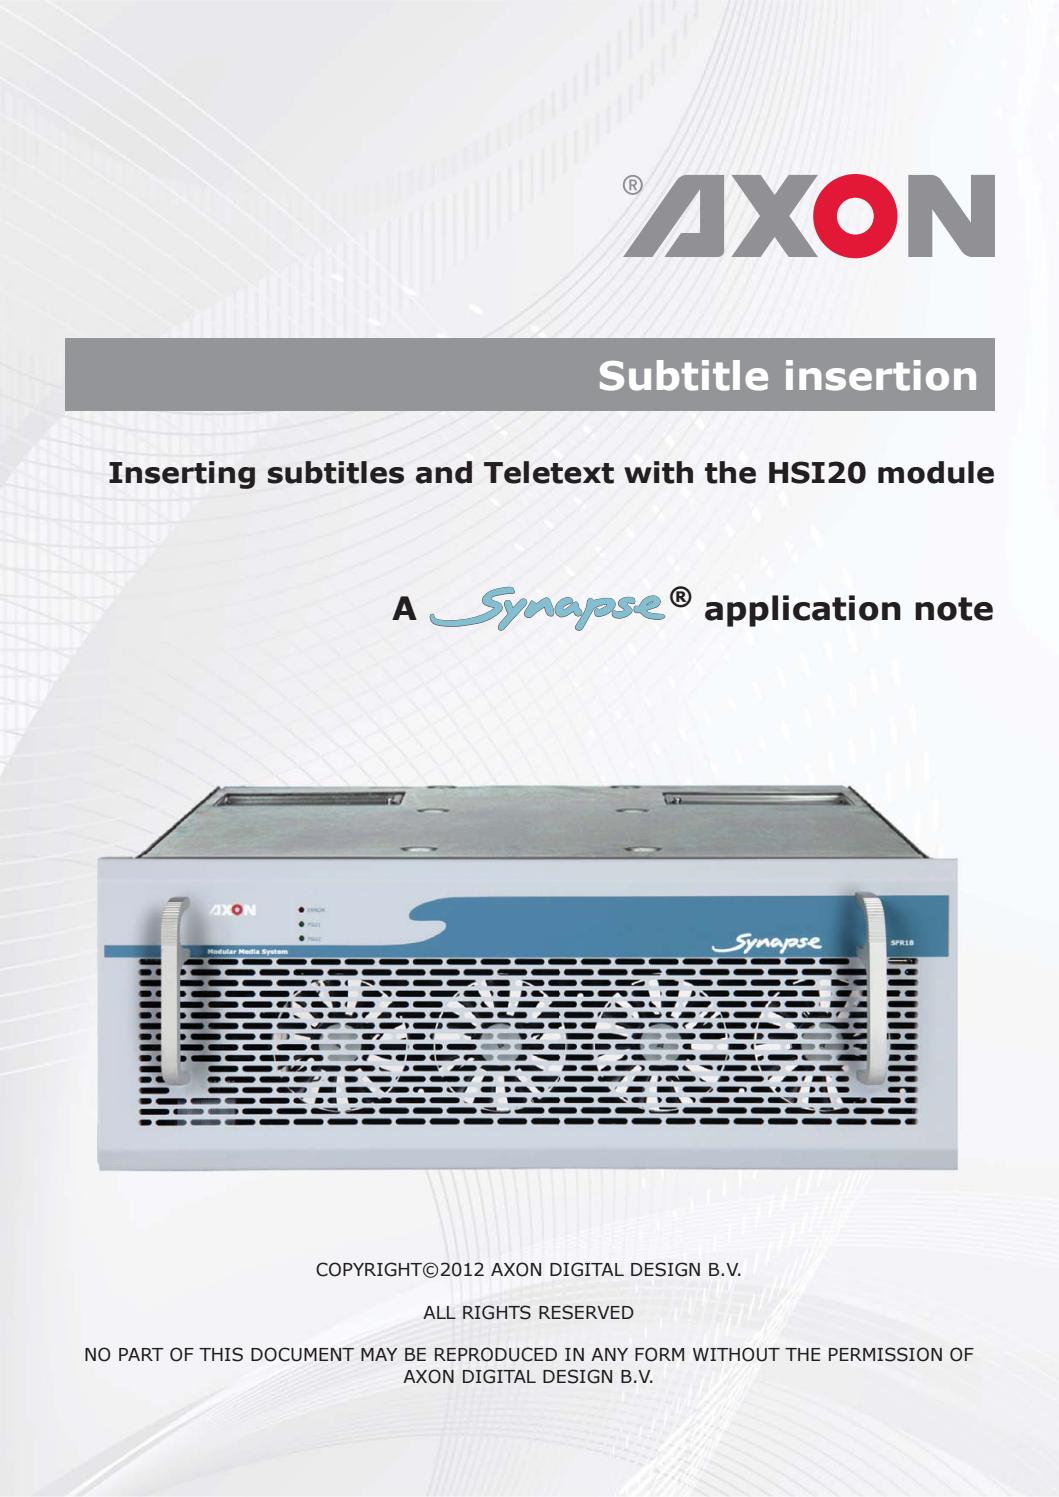 AN2012-10 Subtitle insertion with HSI20 pdf by AXON - issuu